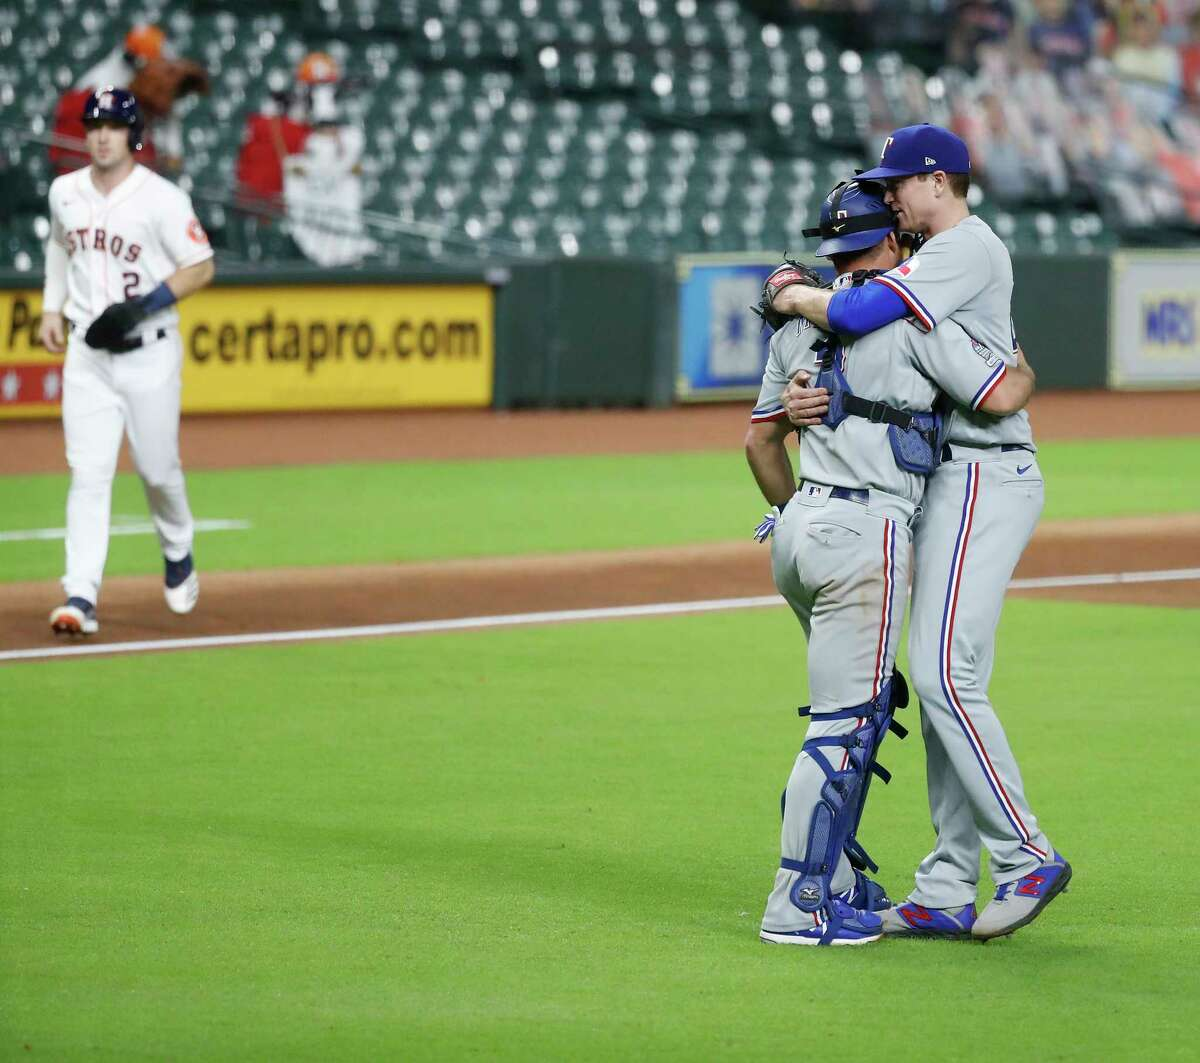 Texas Rangers starting pitcher Kyle Gibson (44) hugs catcher Jeff Mathis (2) after Houston Astros Kyle Tucker lined out to Texas Rangers first baseman Ronald Guzman, ending the game in the bottom of the ninth inning of an MLB baseball game at Minute Maid Park, Wednesday, September 16, 2020, in Houston. Texas Rangers won 1-0.